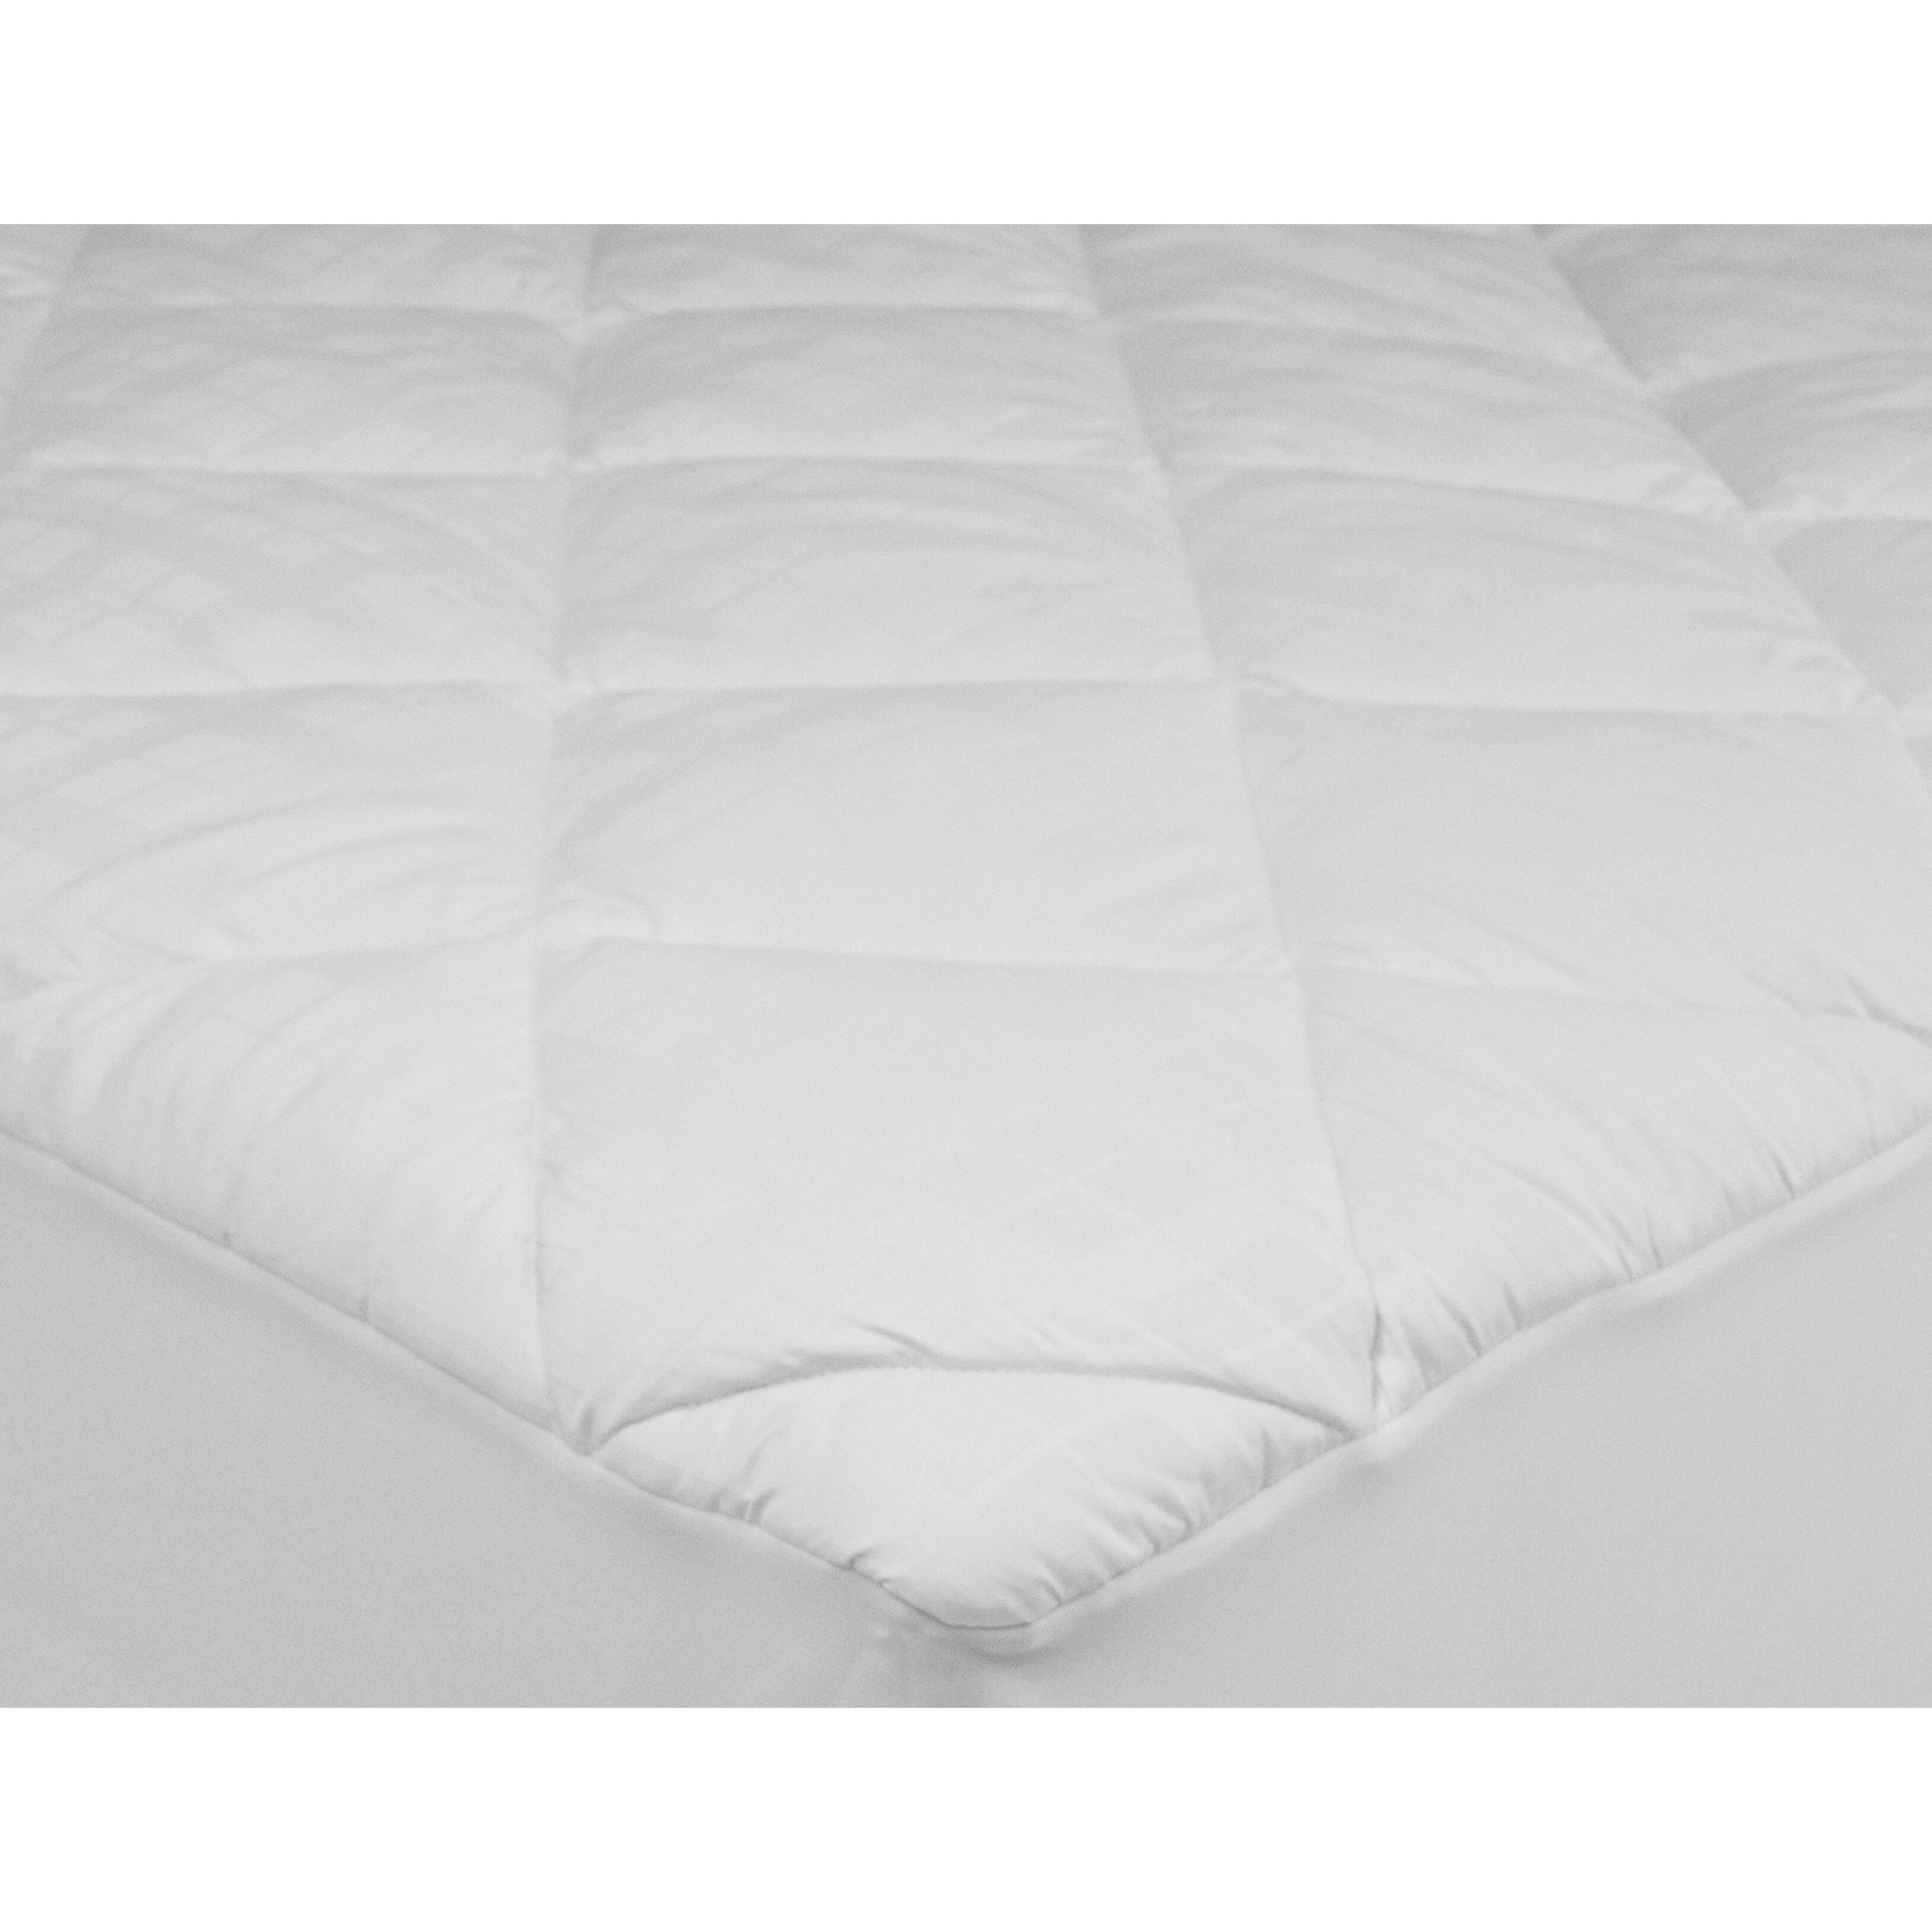 Mattress Pads For Hotel Rooms